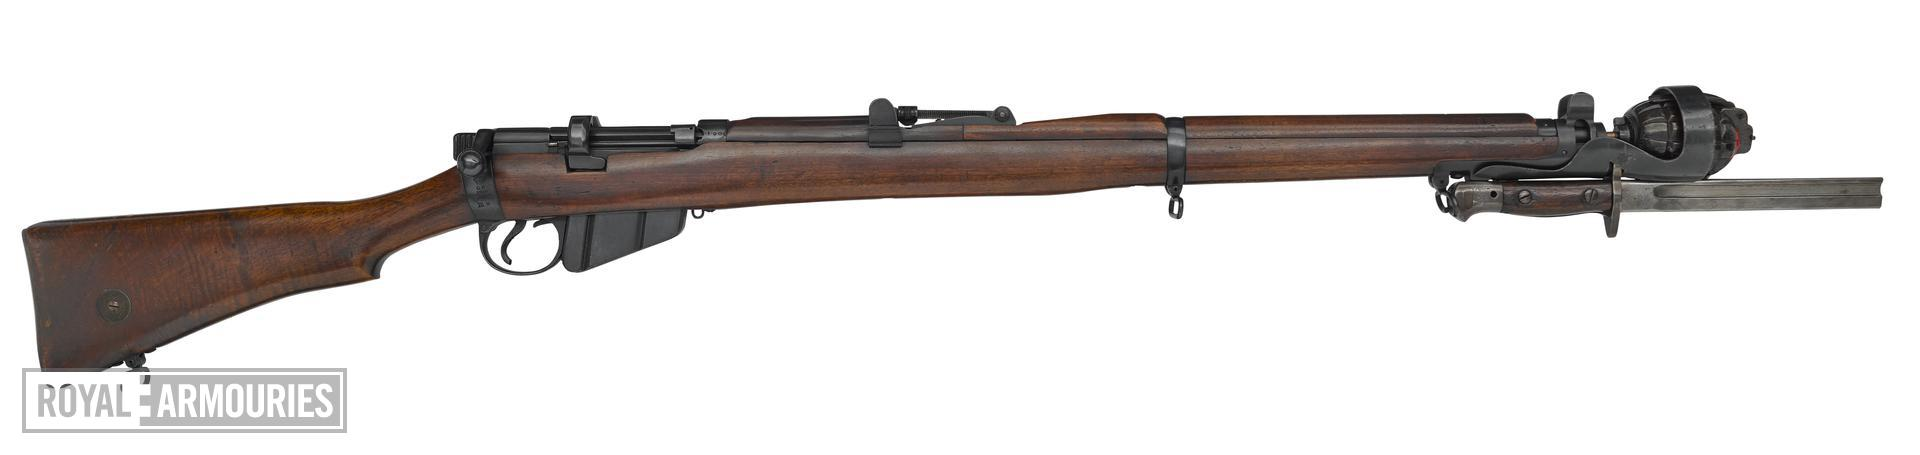 Short Magazine Lee Enfield (SMLE) Mk.III* centrefire bolt action rifle with rod grenade cup (PR.129940). Britain, 1916.